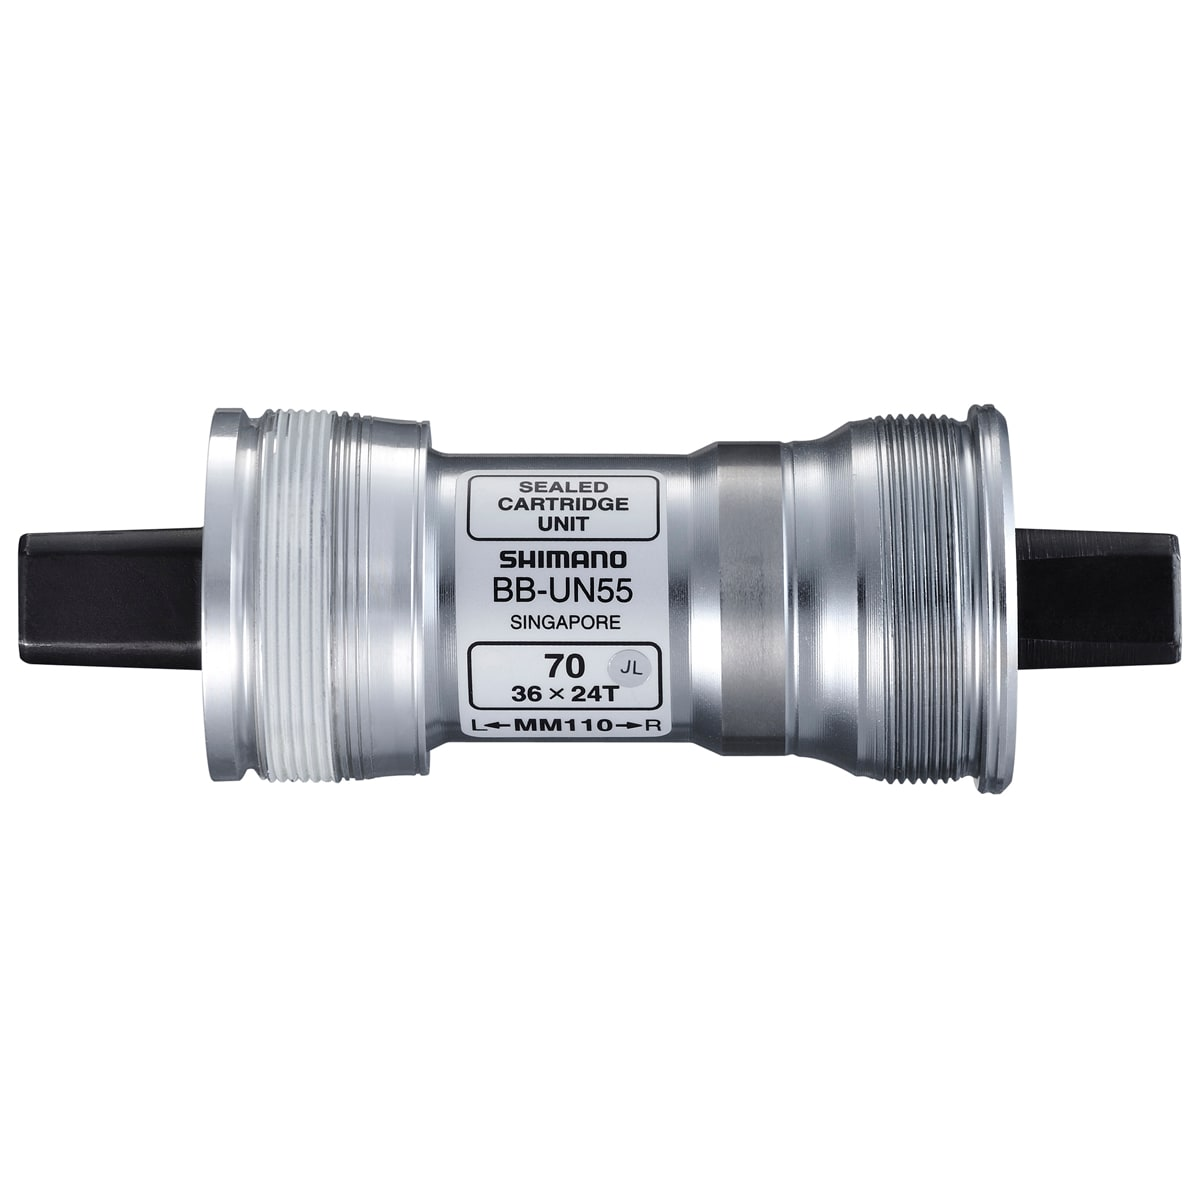 Shimano Vevlager, Square BSA BB-UN55 127.5/68mm